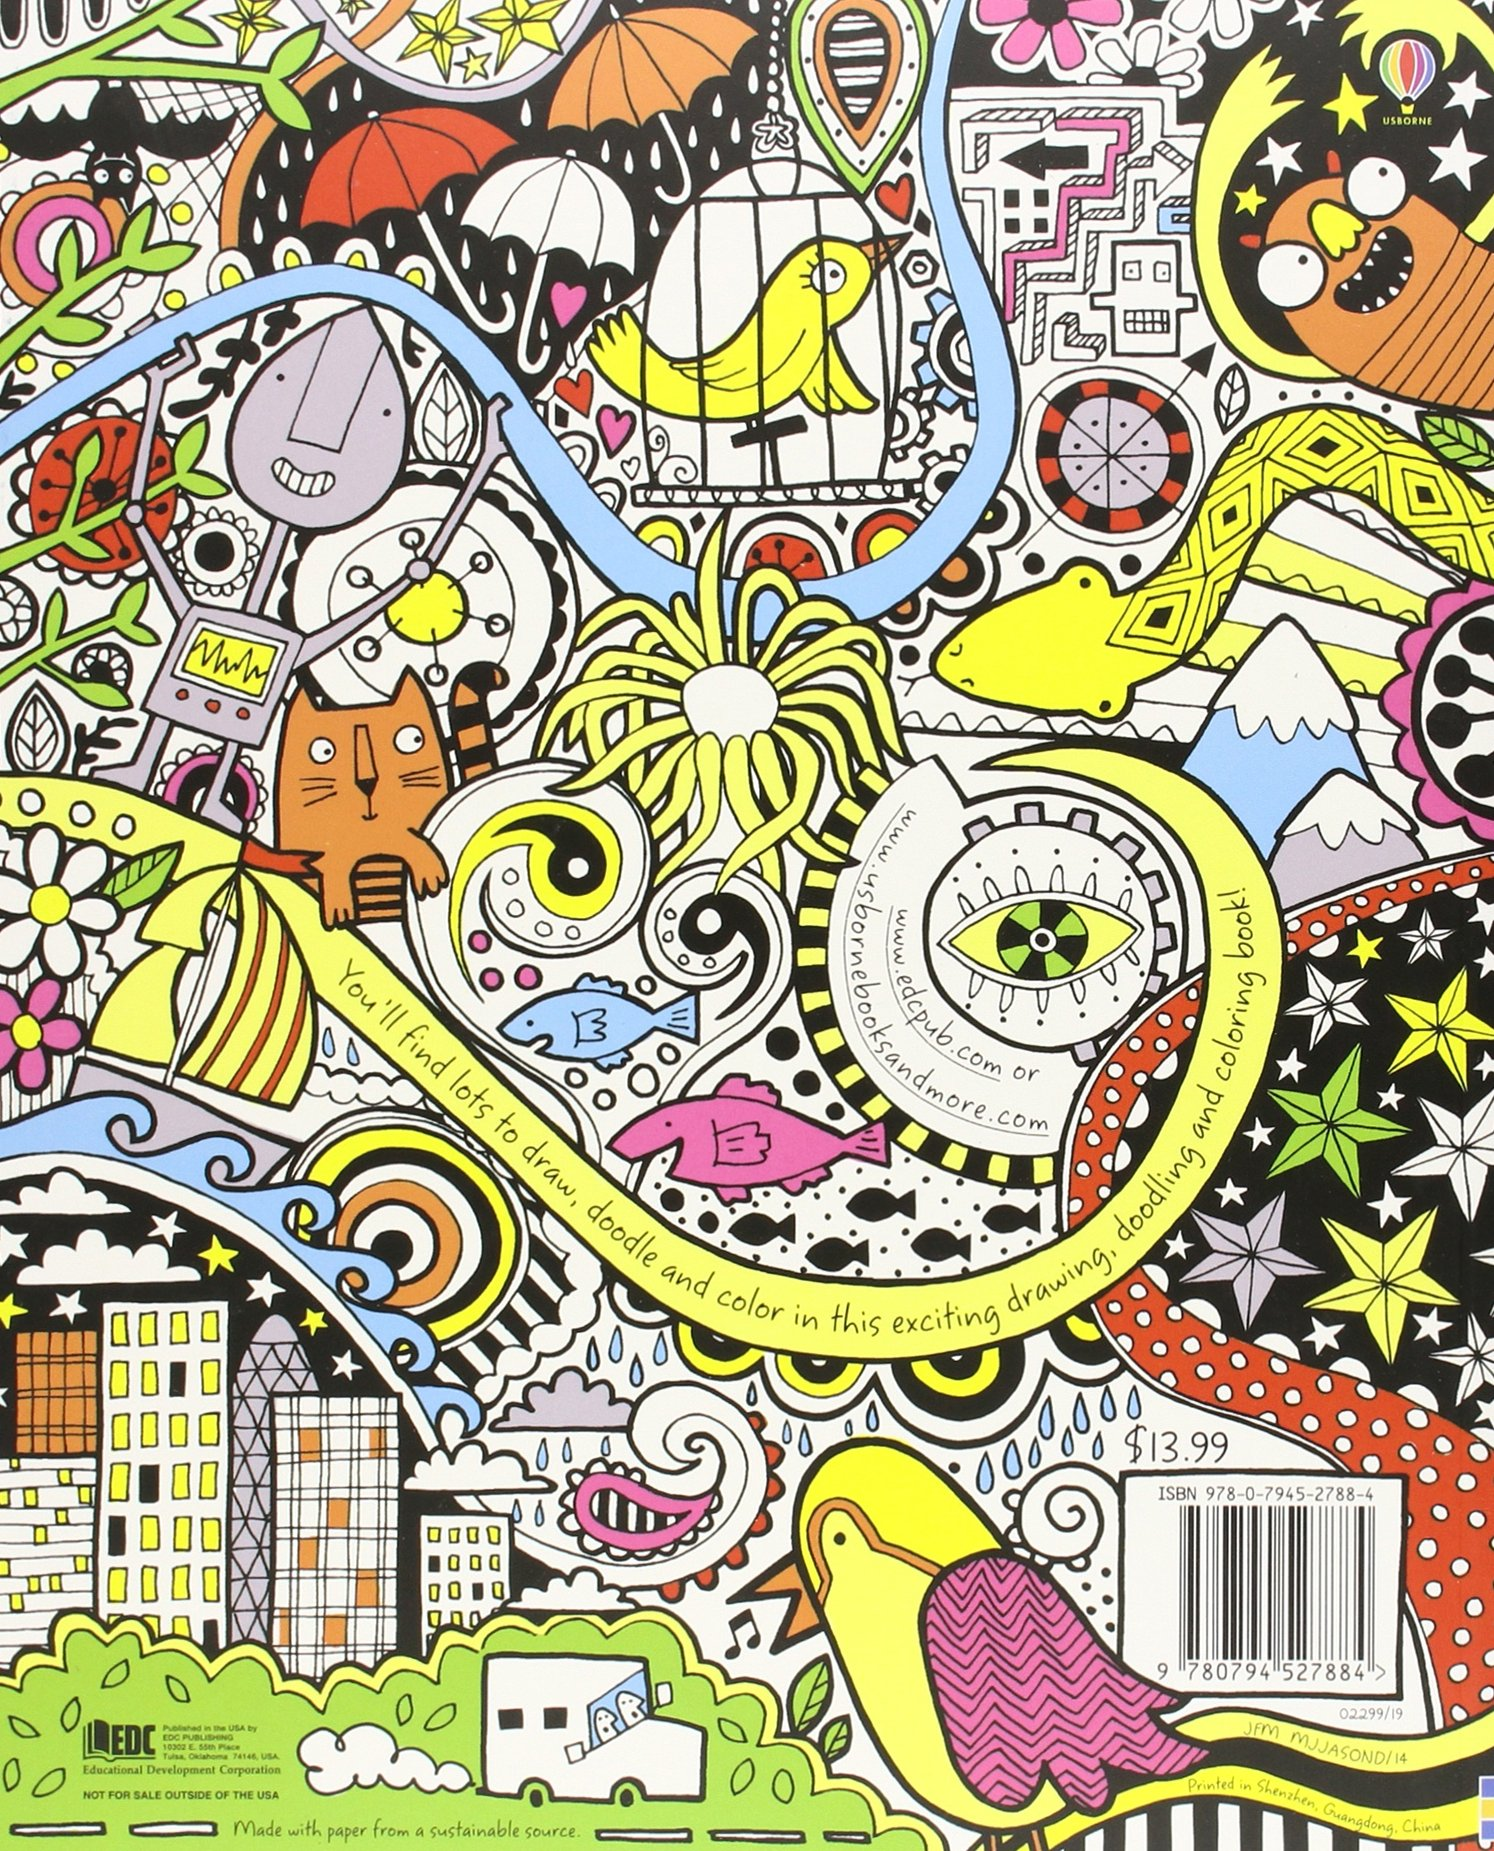 the usborne book of drawing doodling and coloring fiona watt erica harrison katie lovell 9780794527884 amazoncom books - Doodle Coloring Book